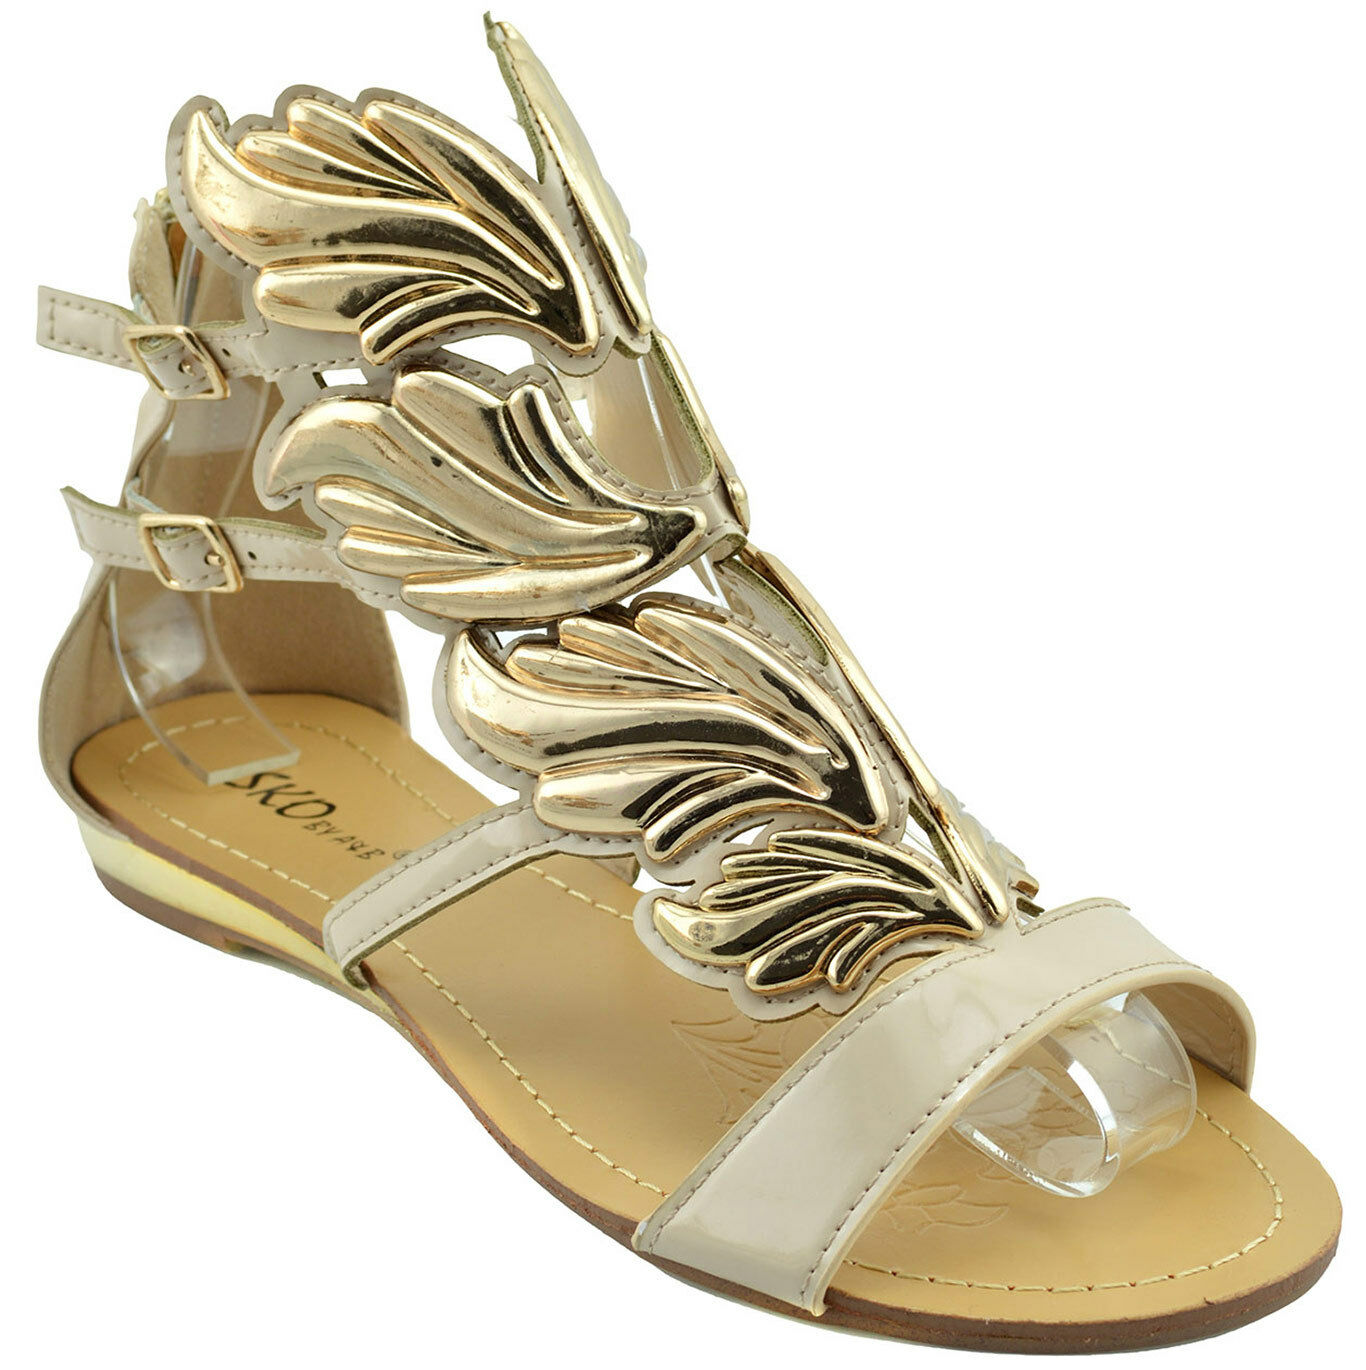 120 Beige Gold HERMES WINGS Fashion Damens Schuhes Sandaleen Flats NEW COLLECTION